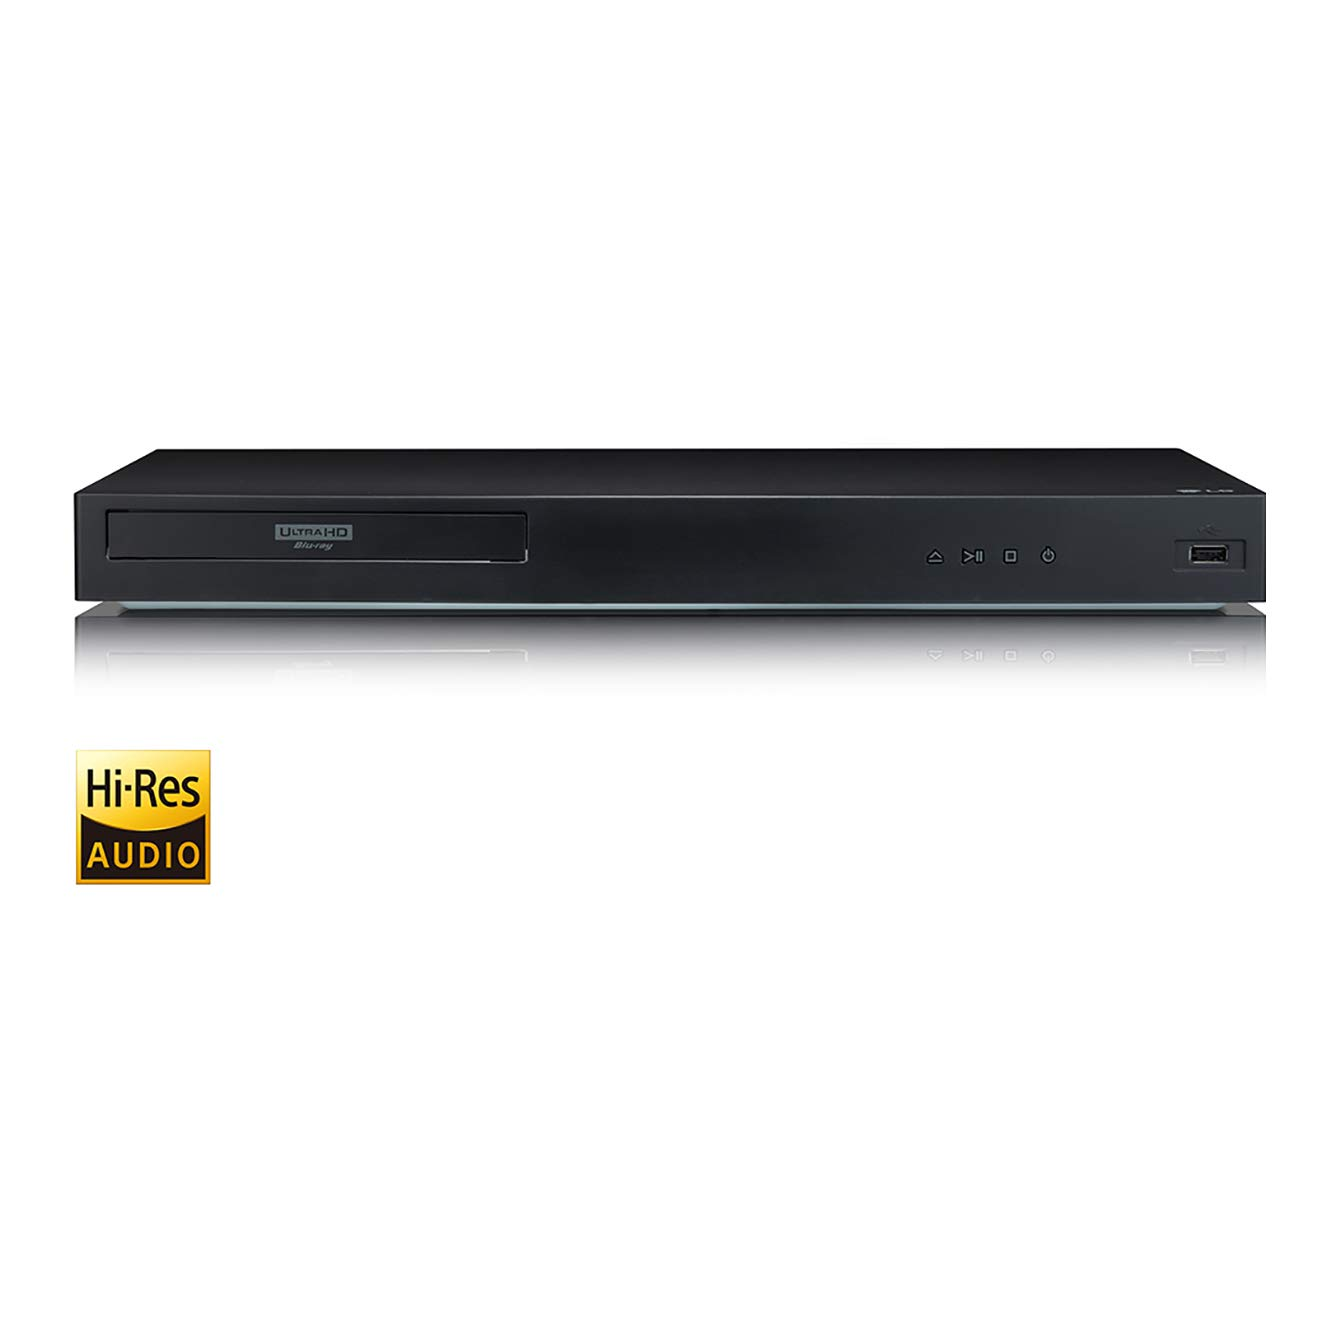 LG UBK80 4K Ultra-HD Blu-ray Player with HDR Compatibility 2018